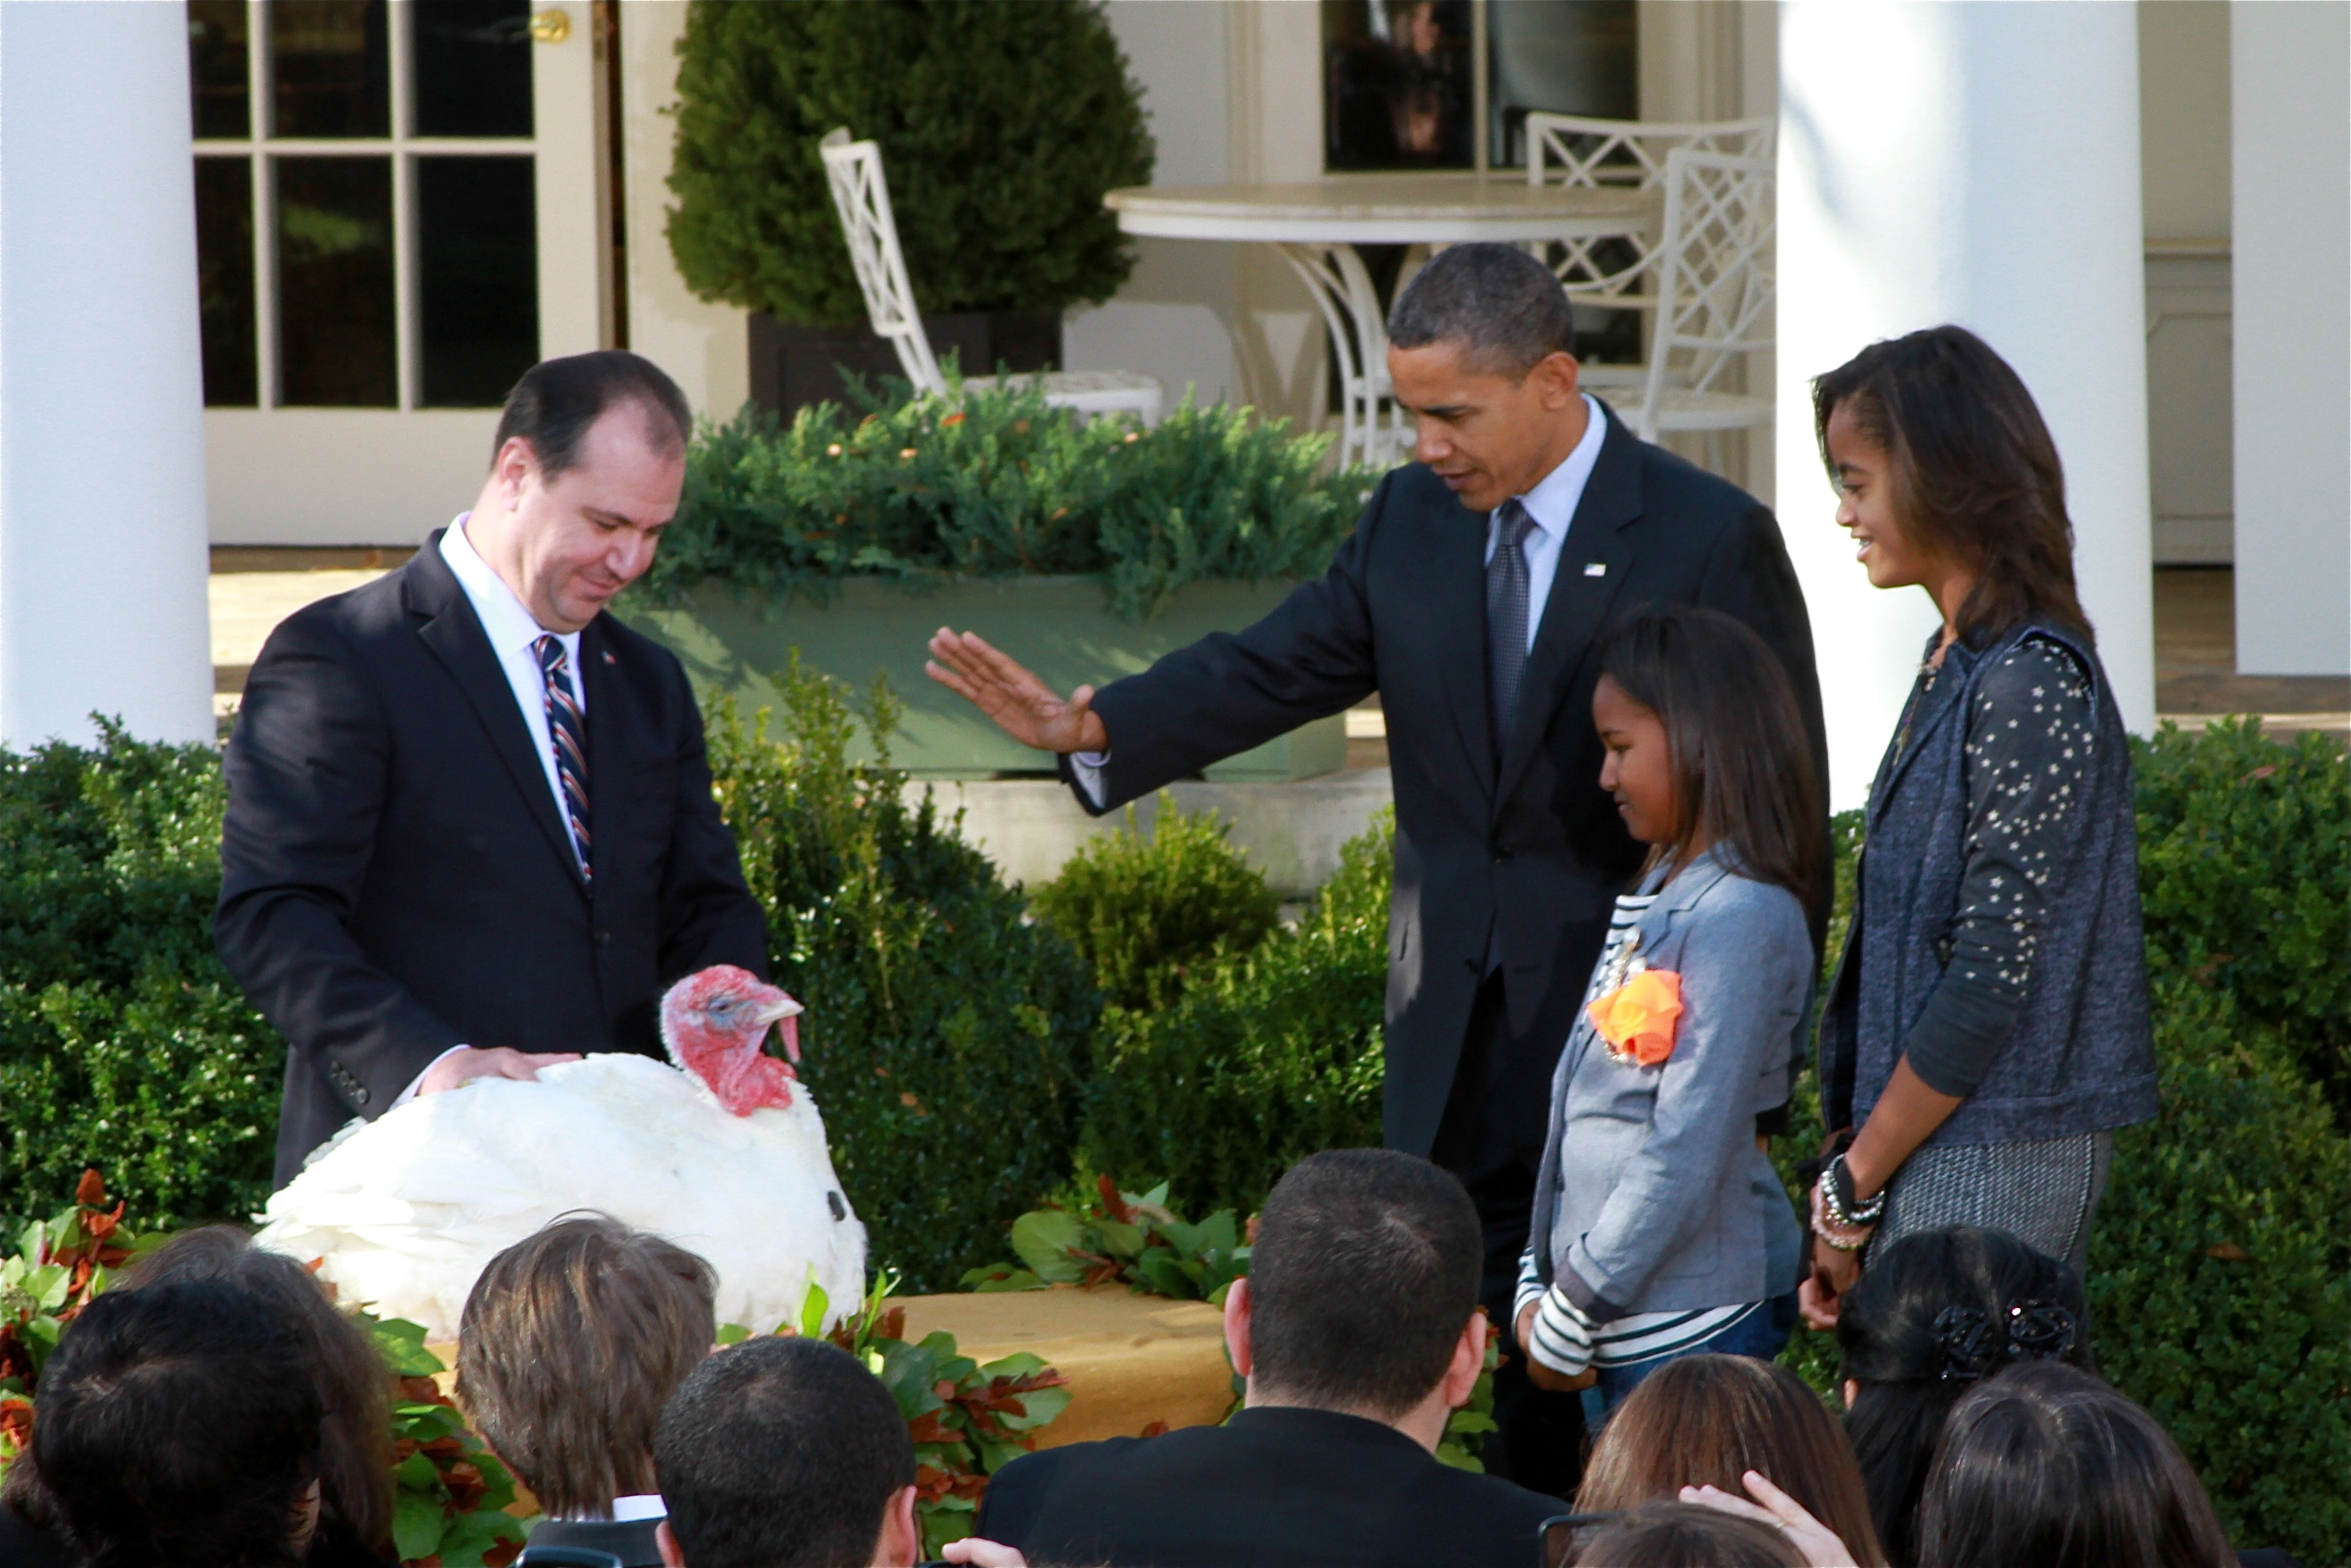 The White House. President Obama continues the tradition of pardoning the National Thanksgiving Turkey in the Rose Garden. His daughters Sasha and Malia accompanied him.